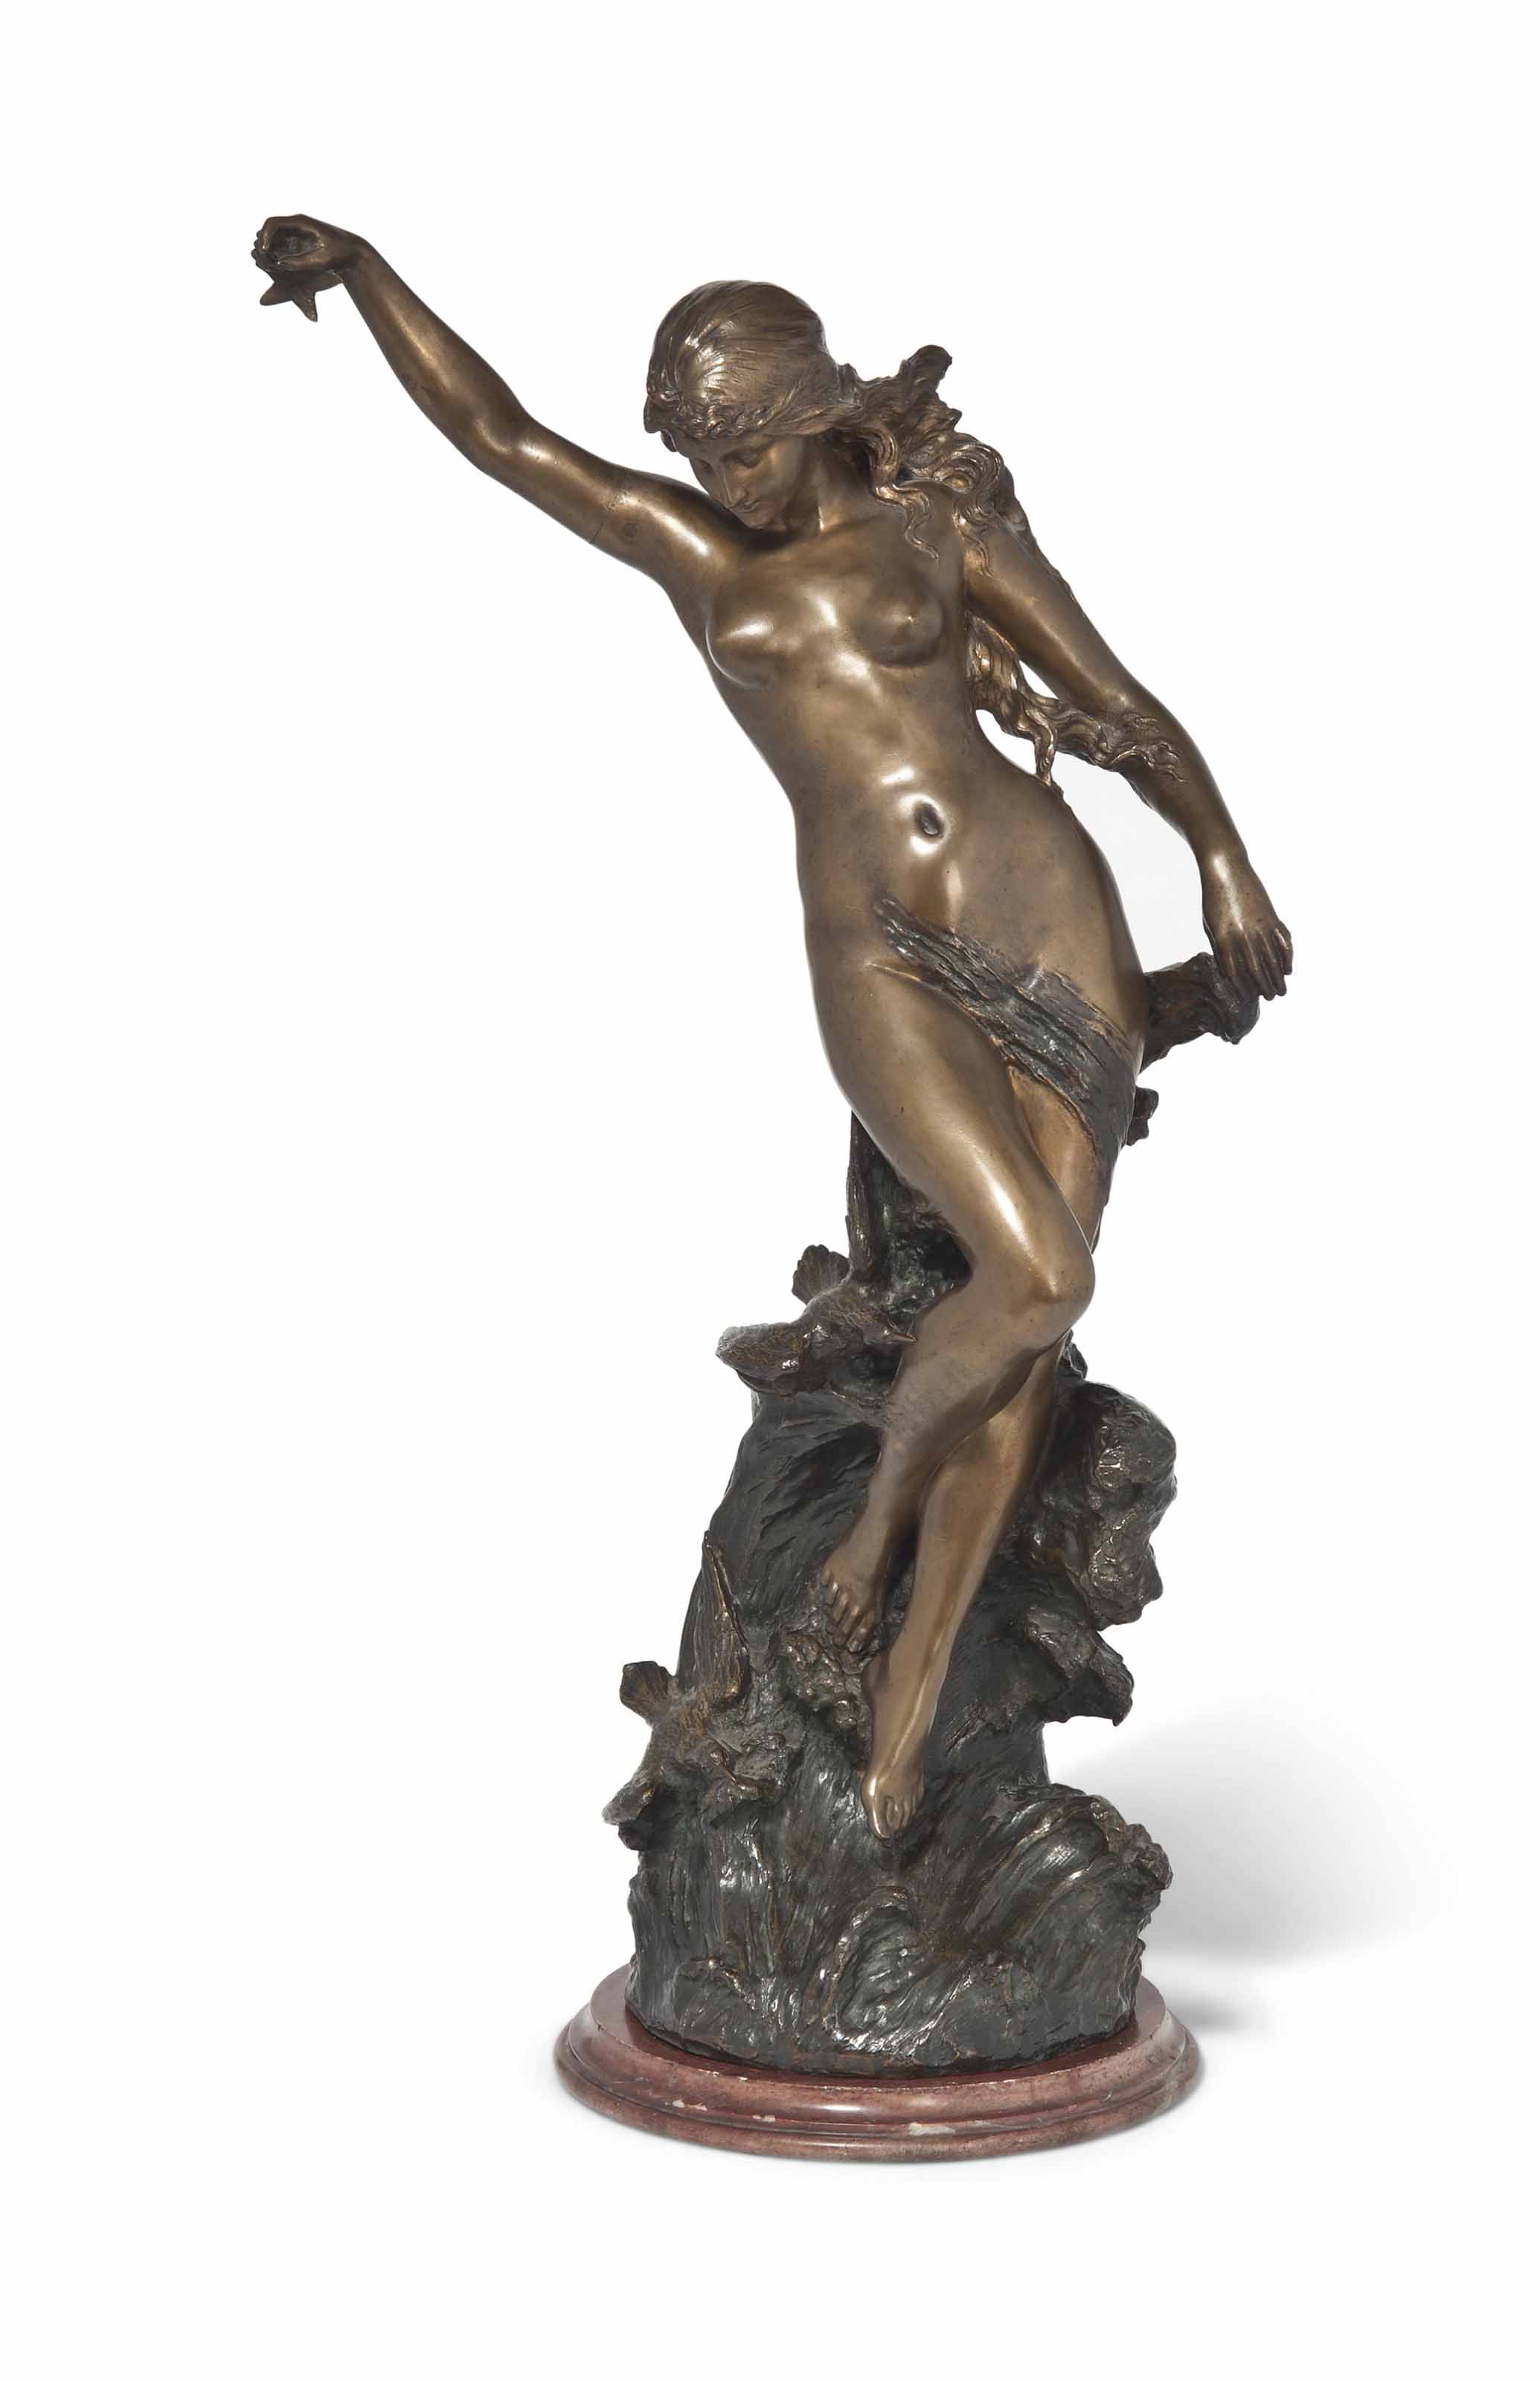 A LARGE FRENCH BRONZE FIGURE ENTITLED 'ETOILE DE MER'